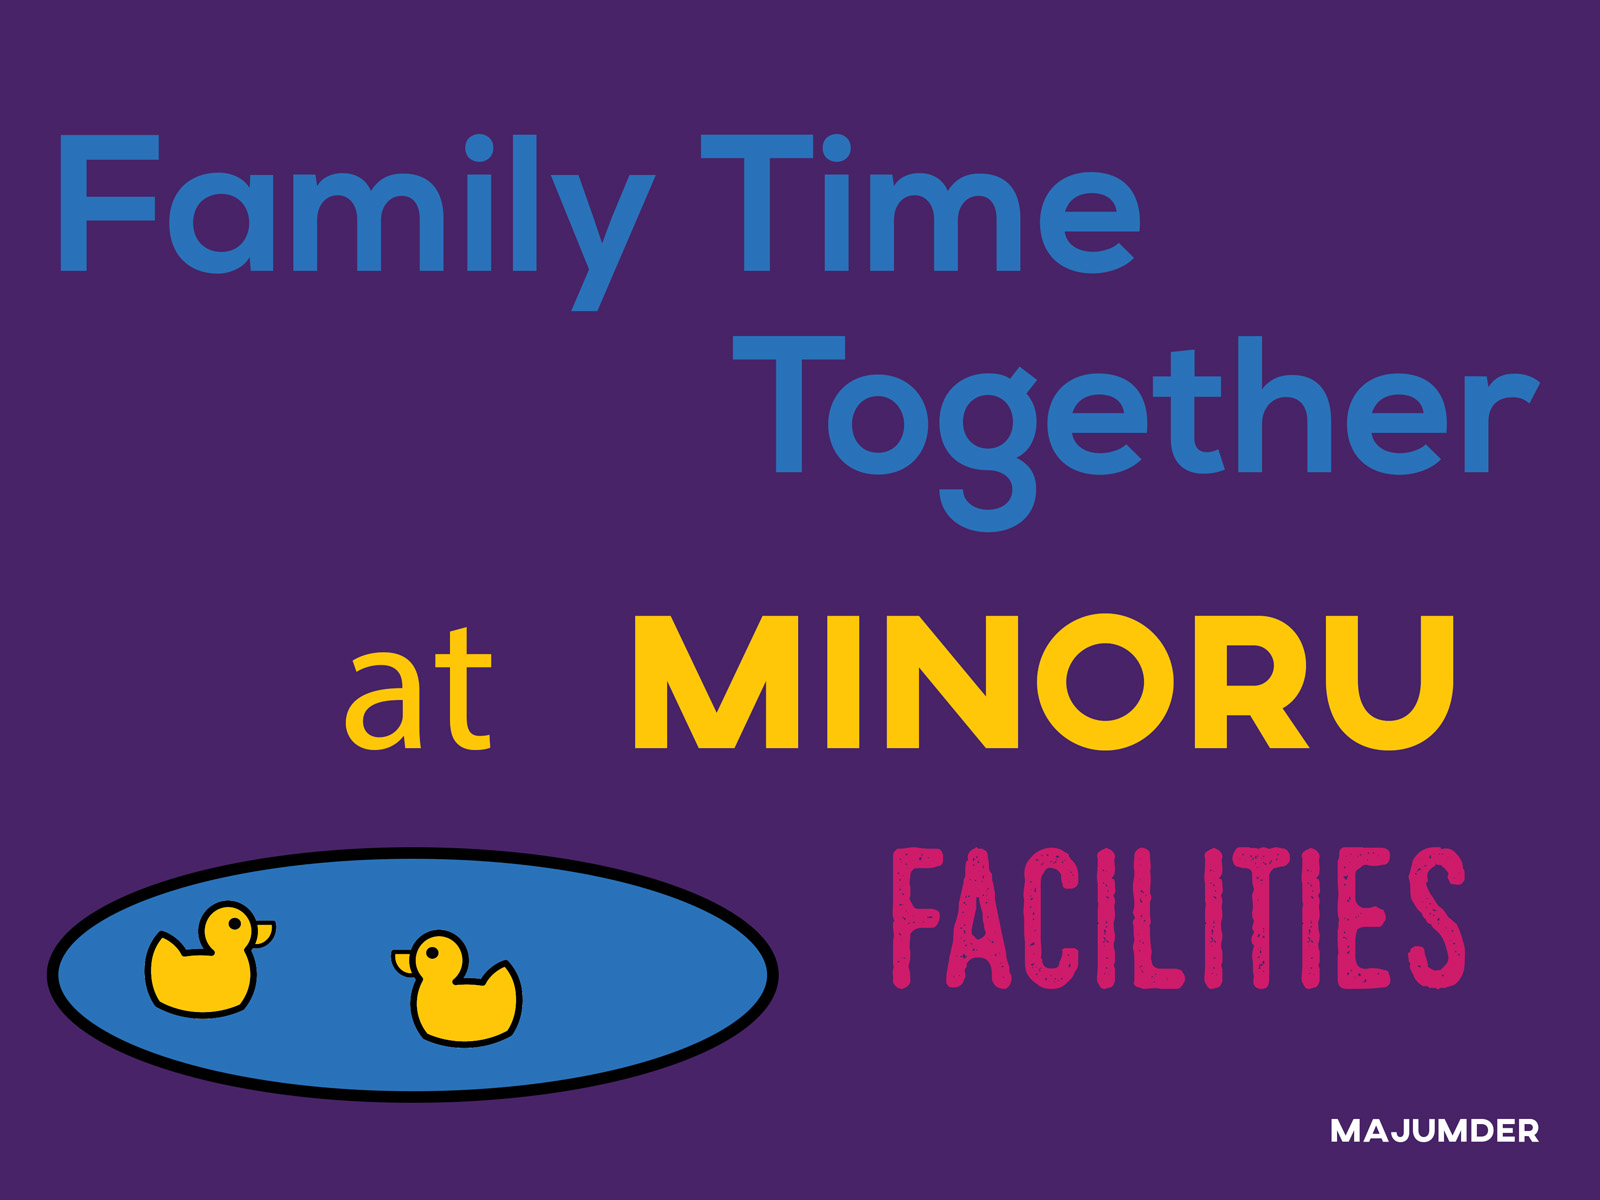 Family time together at Minoru facilities